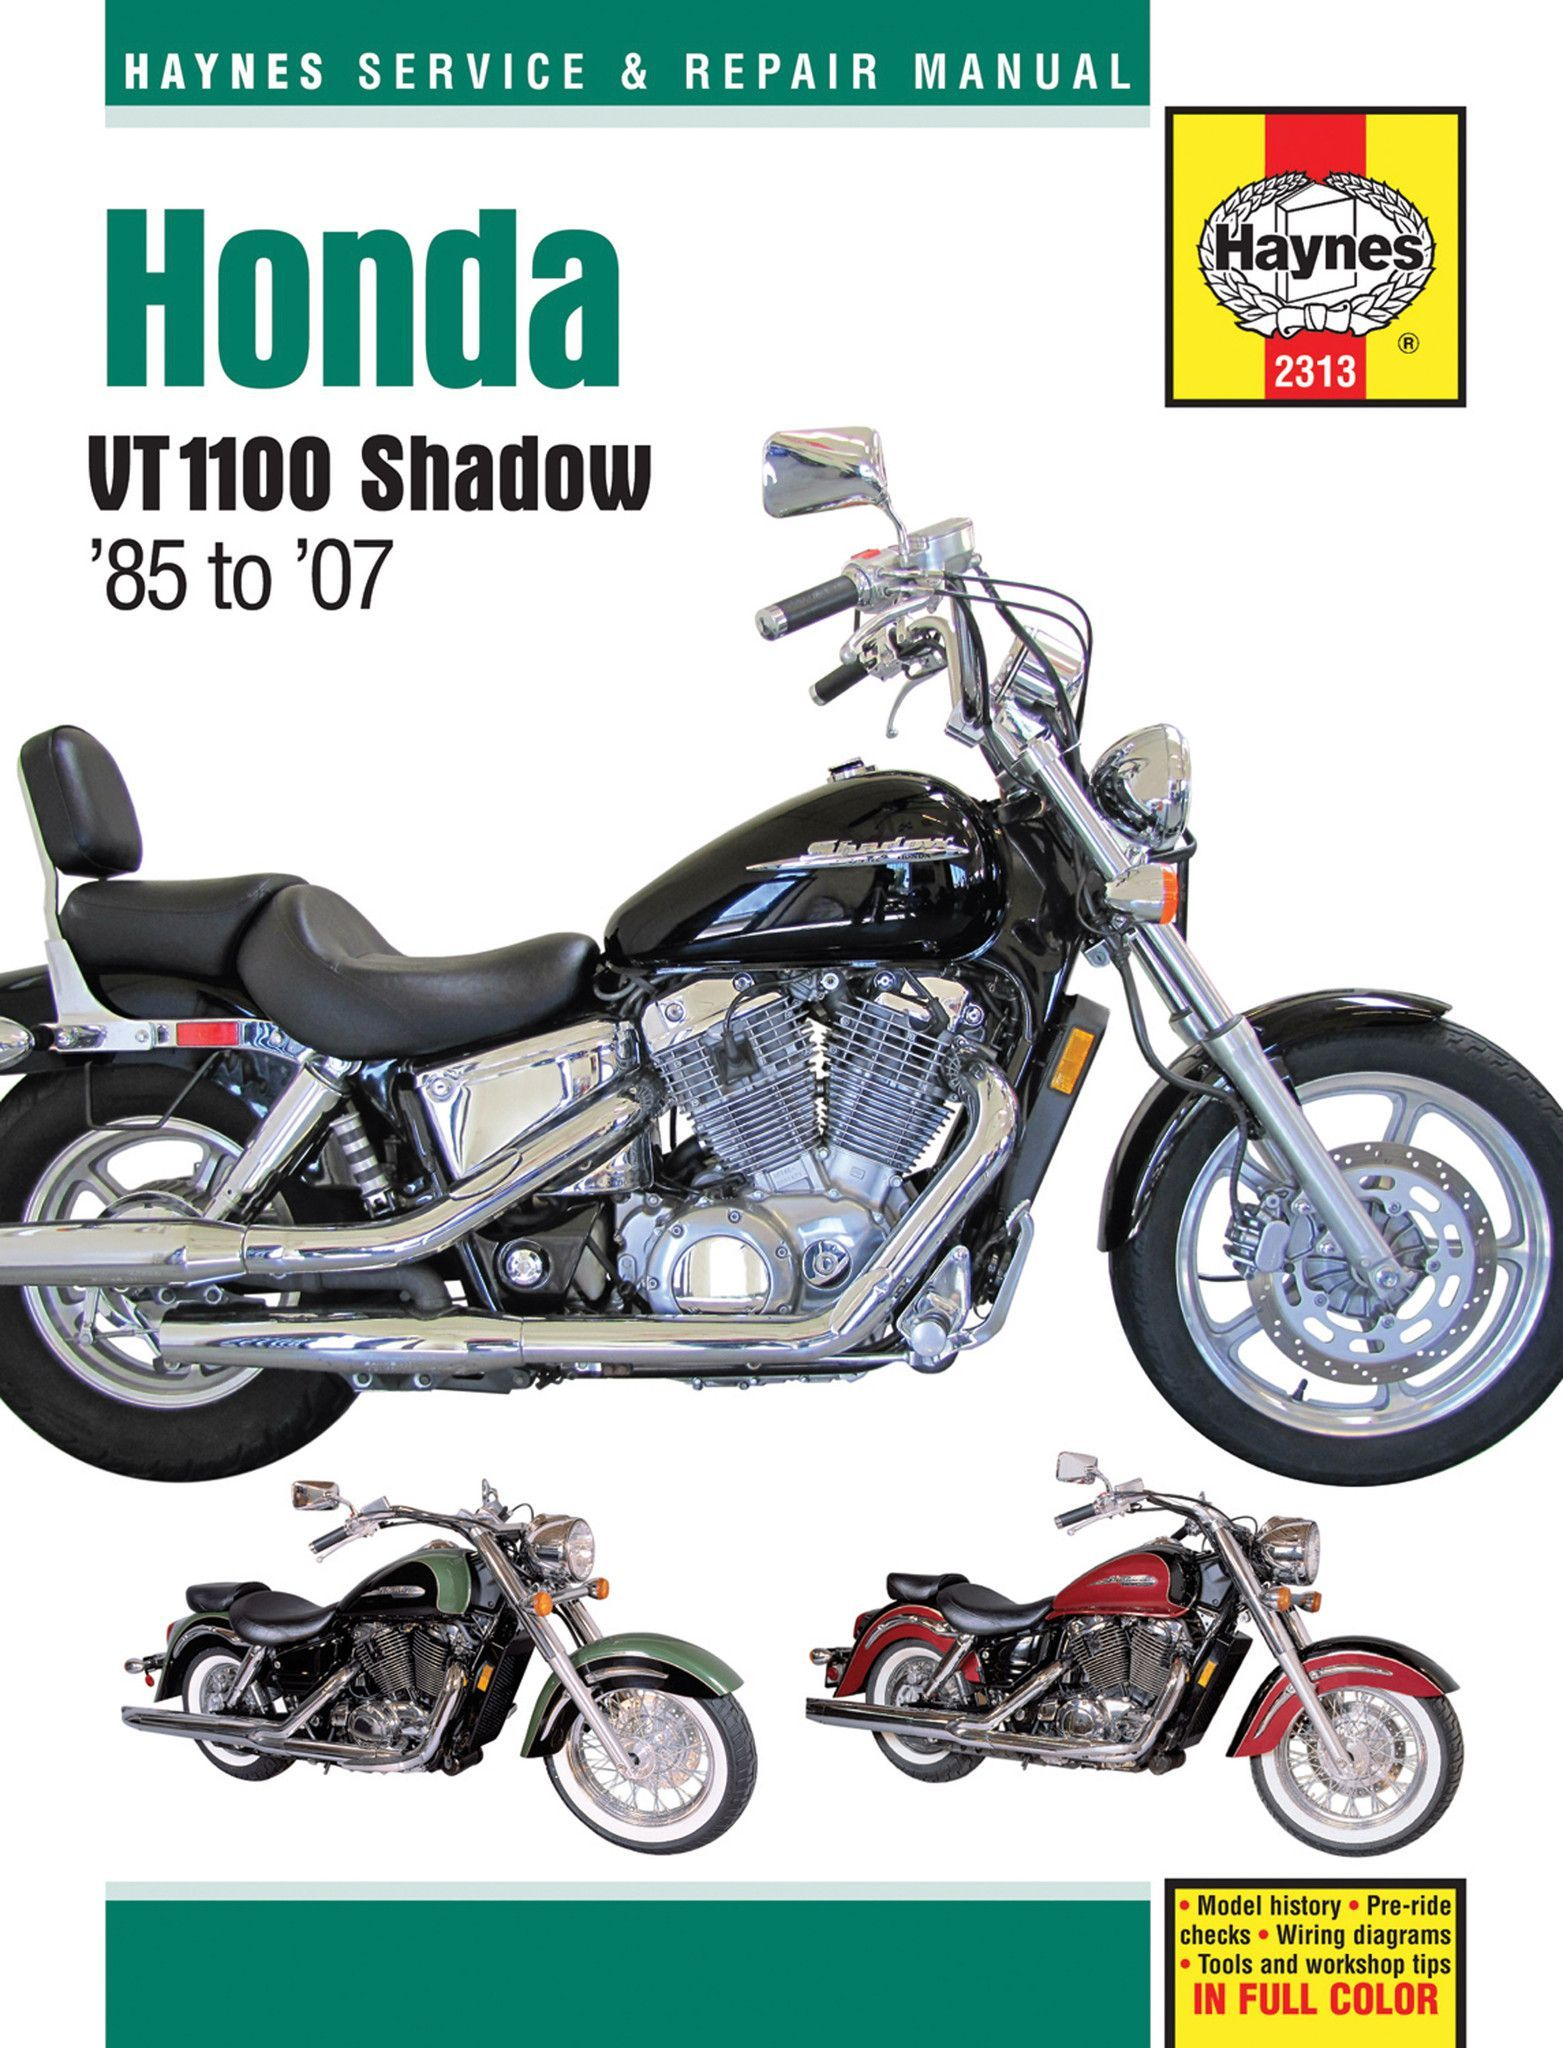 haynes m2313 service repair manual for 1985 07 honda shadow vt1100 rh pinterest com 2012 honda shadow aero owner's manual Honda Shadow 600